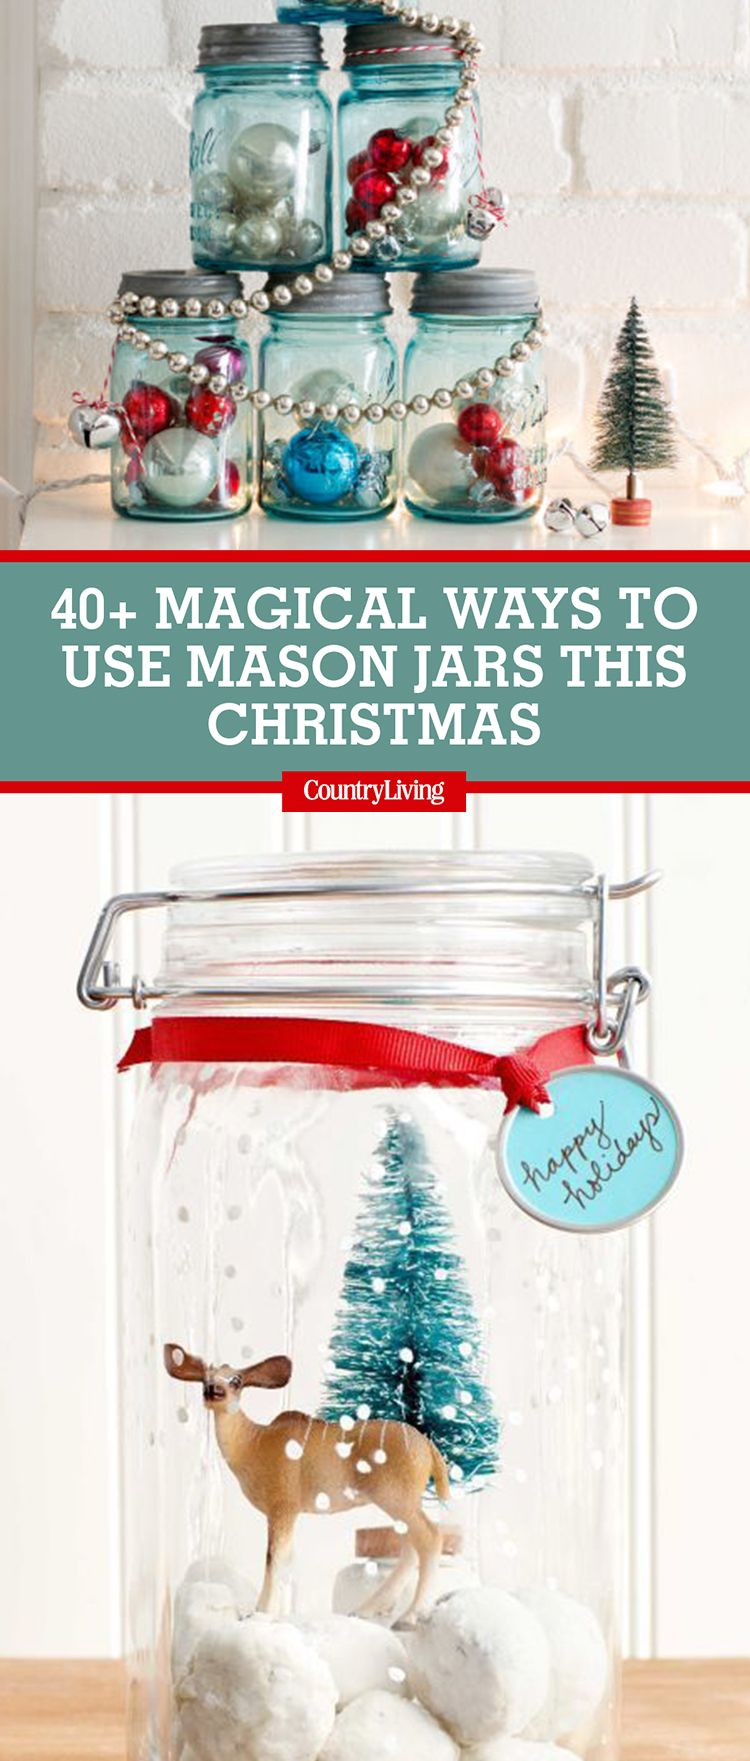 Easy Mason Jar Christmas Crafts That Are Just As Pretty As They Are Fun To Make Mason Jar Christmas Crafts Mason Jar Crafts Christmas Jars